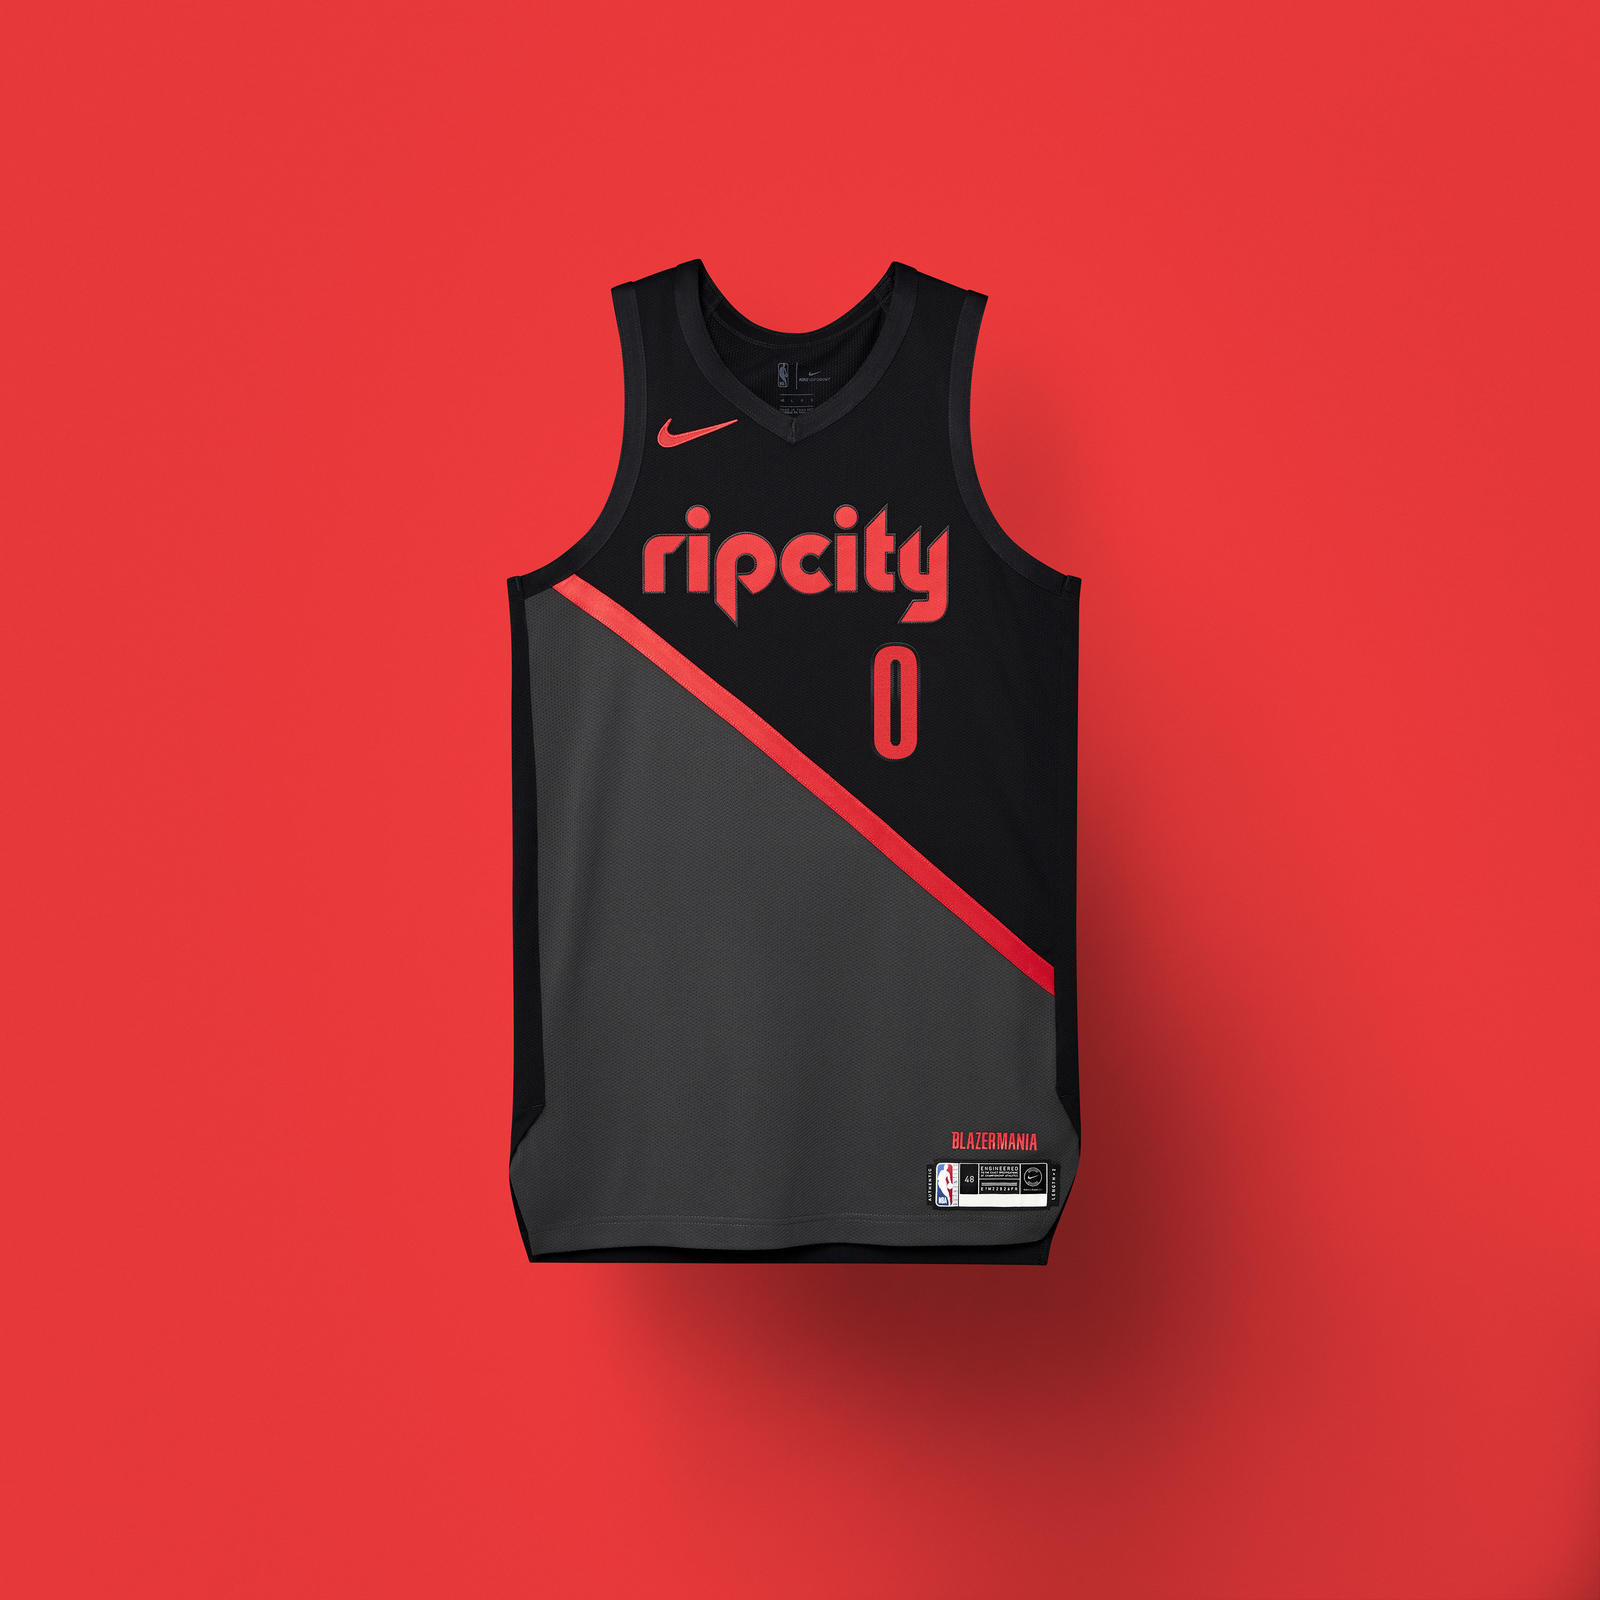 62cf51615e3 Ranking every  City Edition  jersey